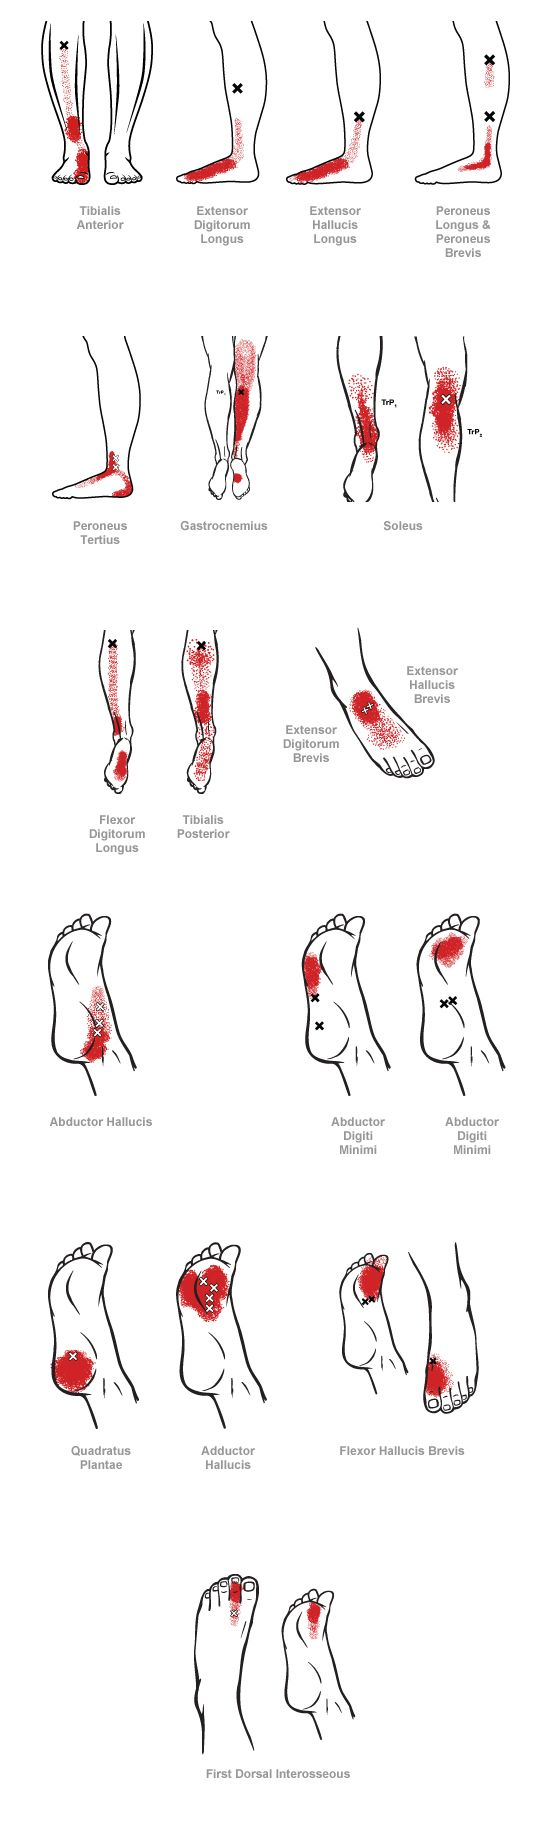 MAYOFASCIAL PAIN (foot/ankle) | trigger point referral pain patterns ...